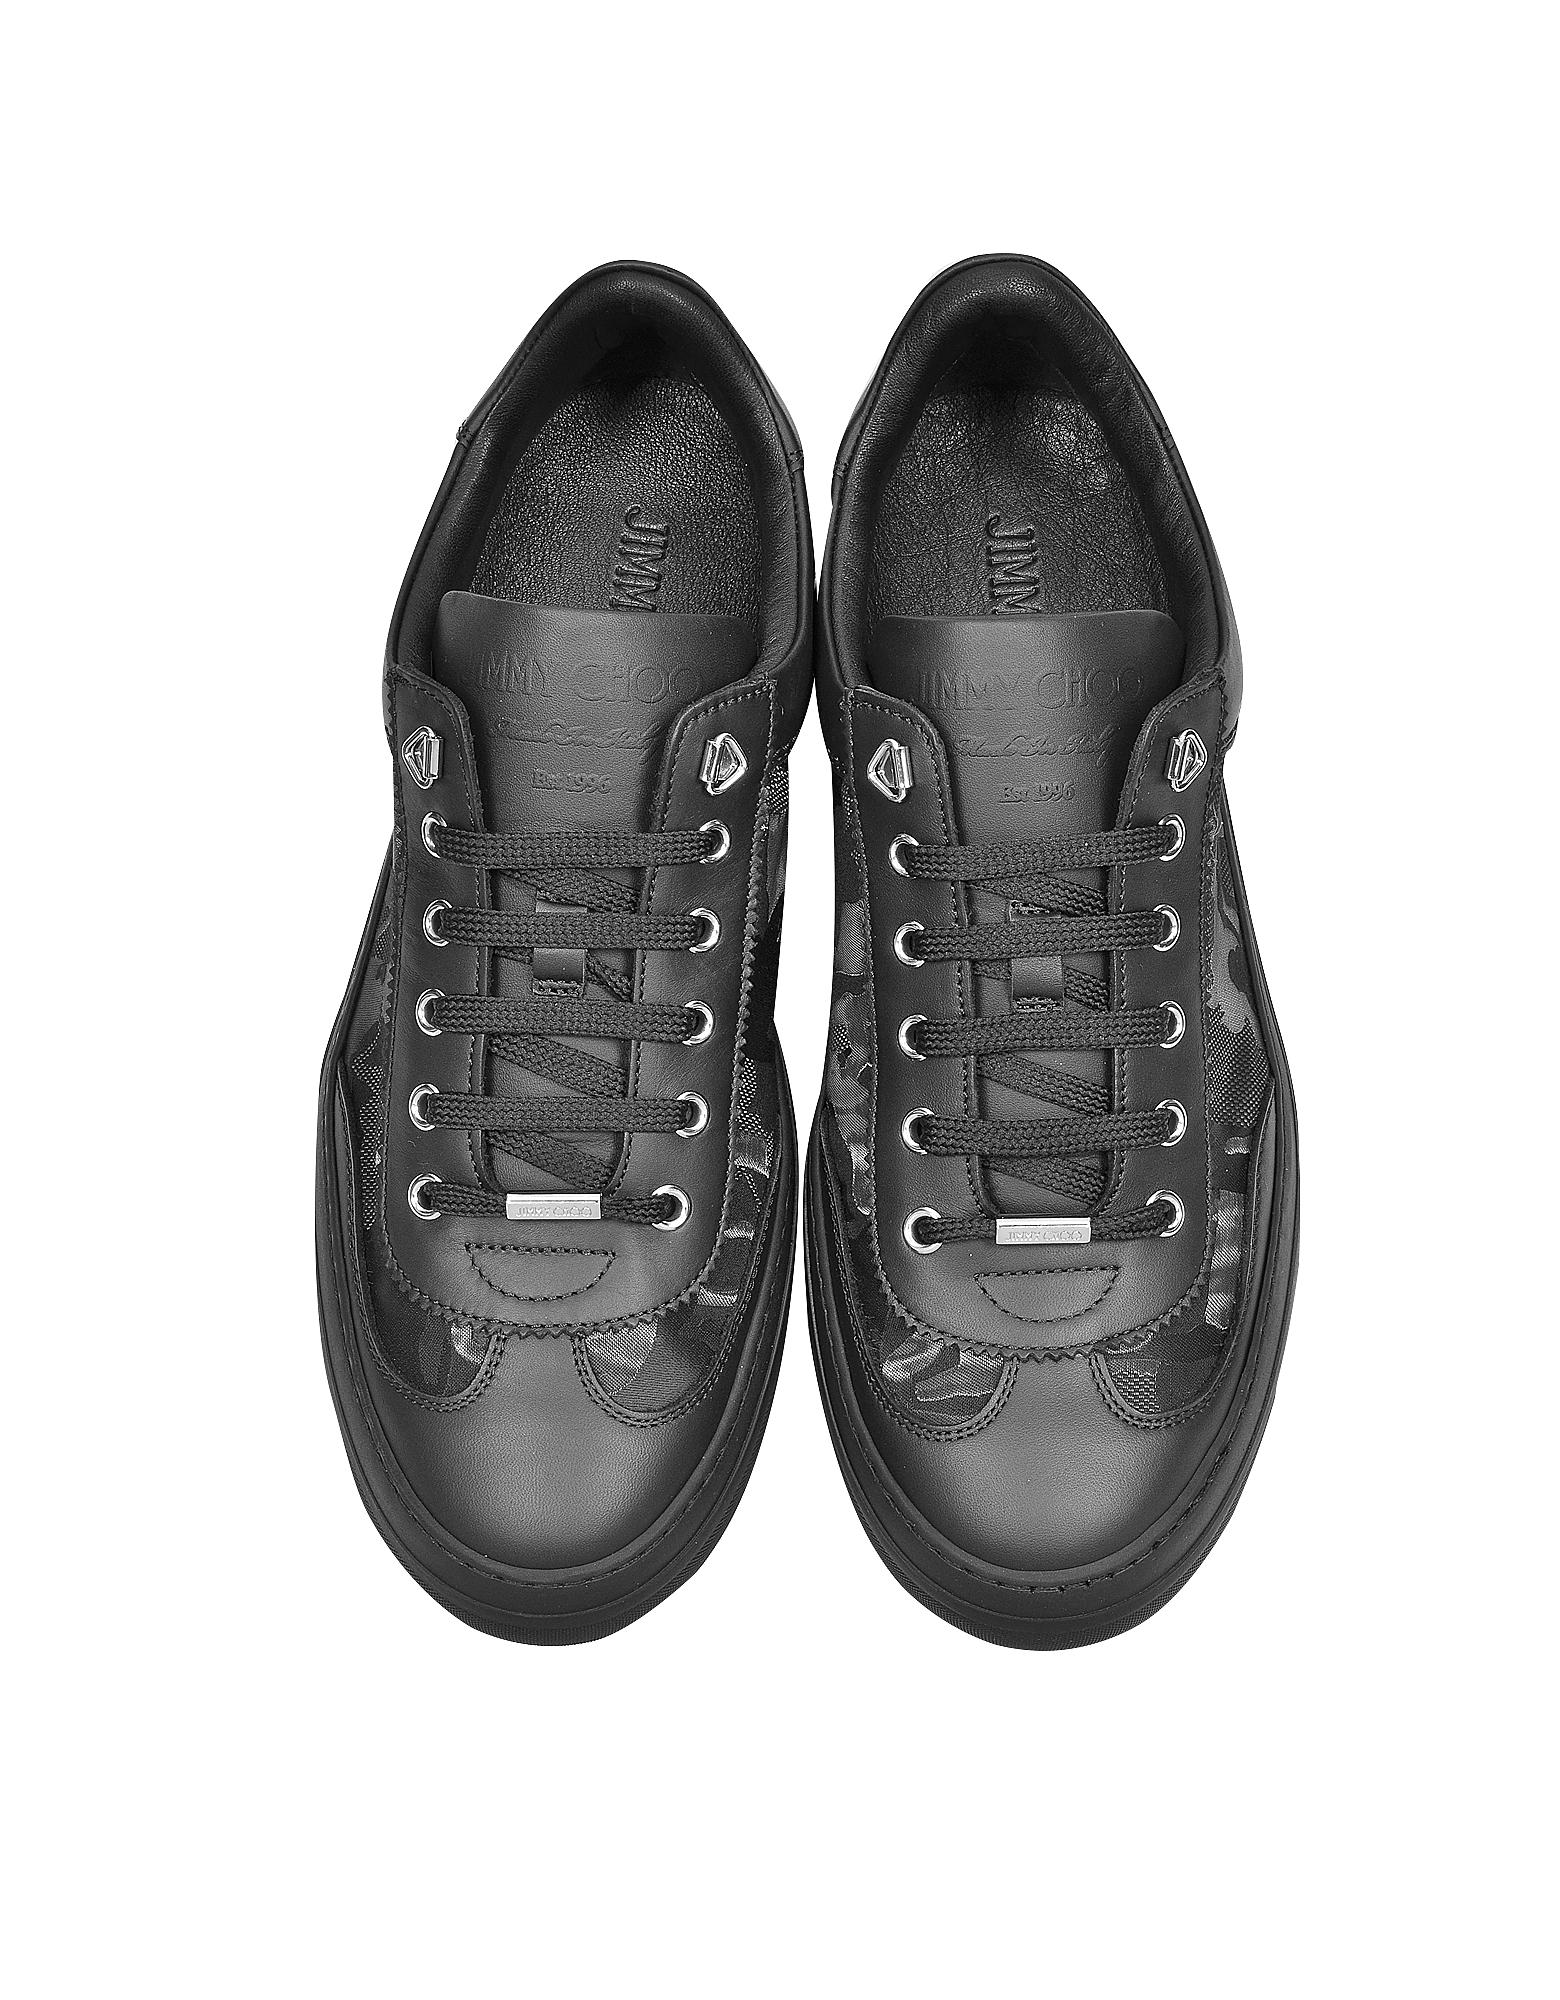 a26fa16e1f0 Lyst - Jimmy Choo Ace Black Camo Fabric Mix Low Top Sneakers in ...